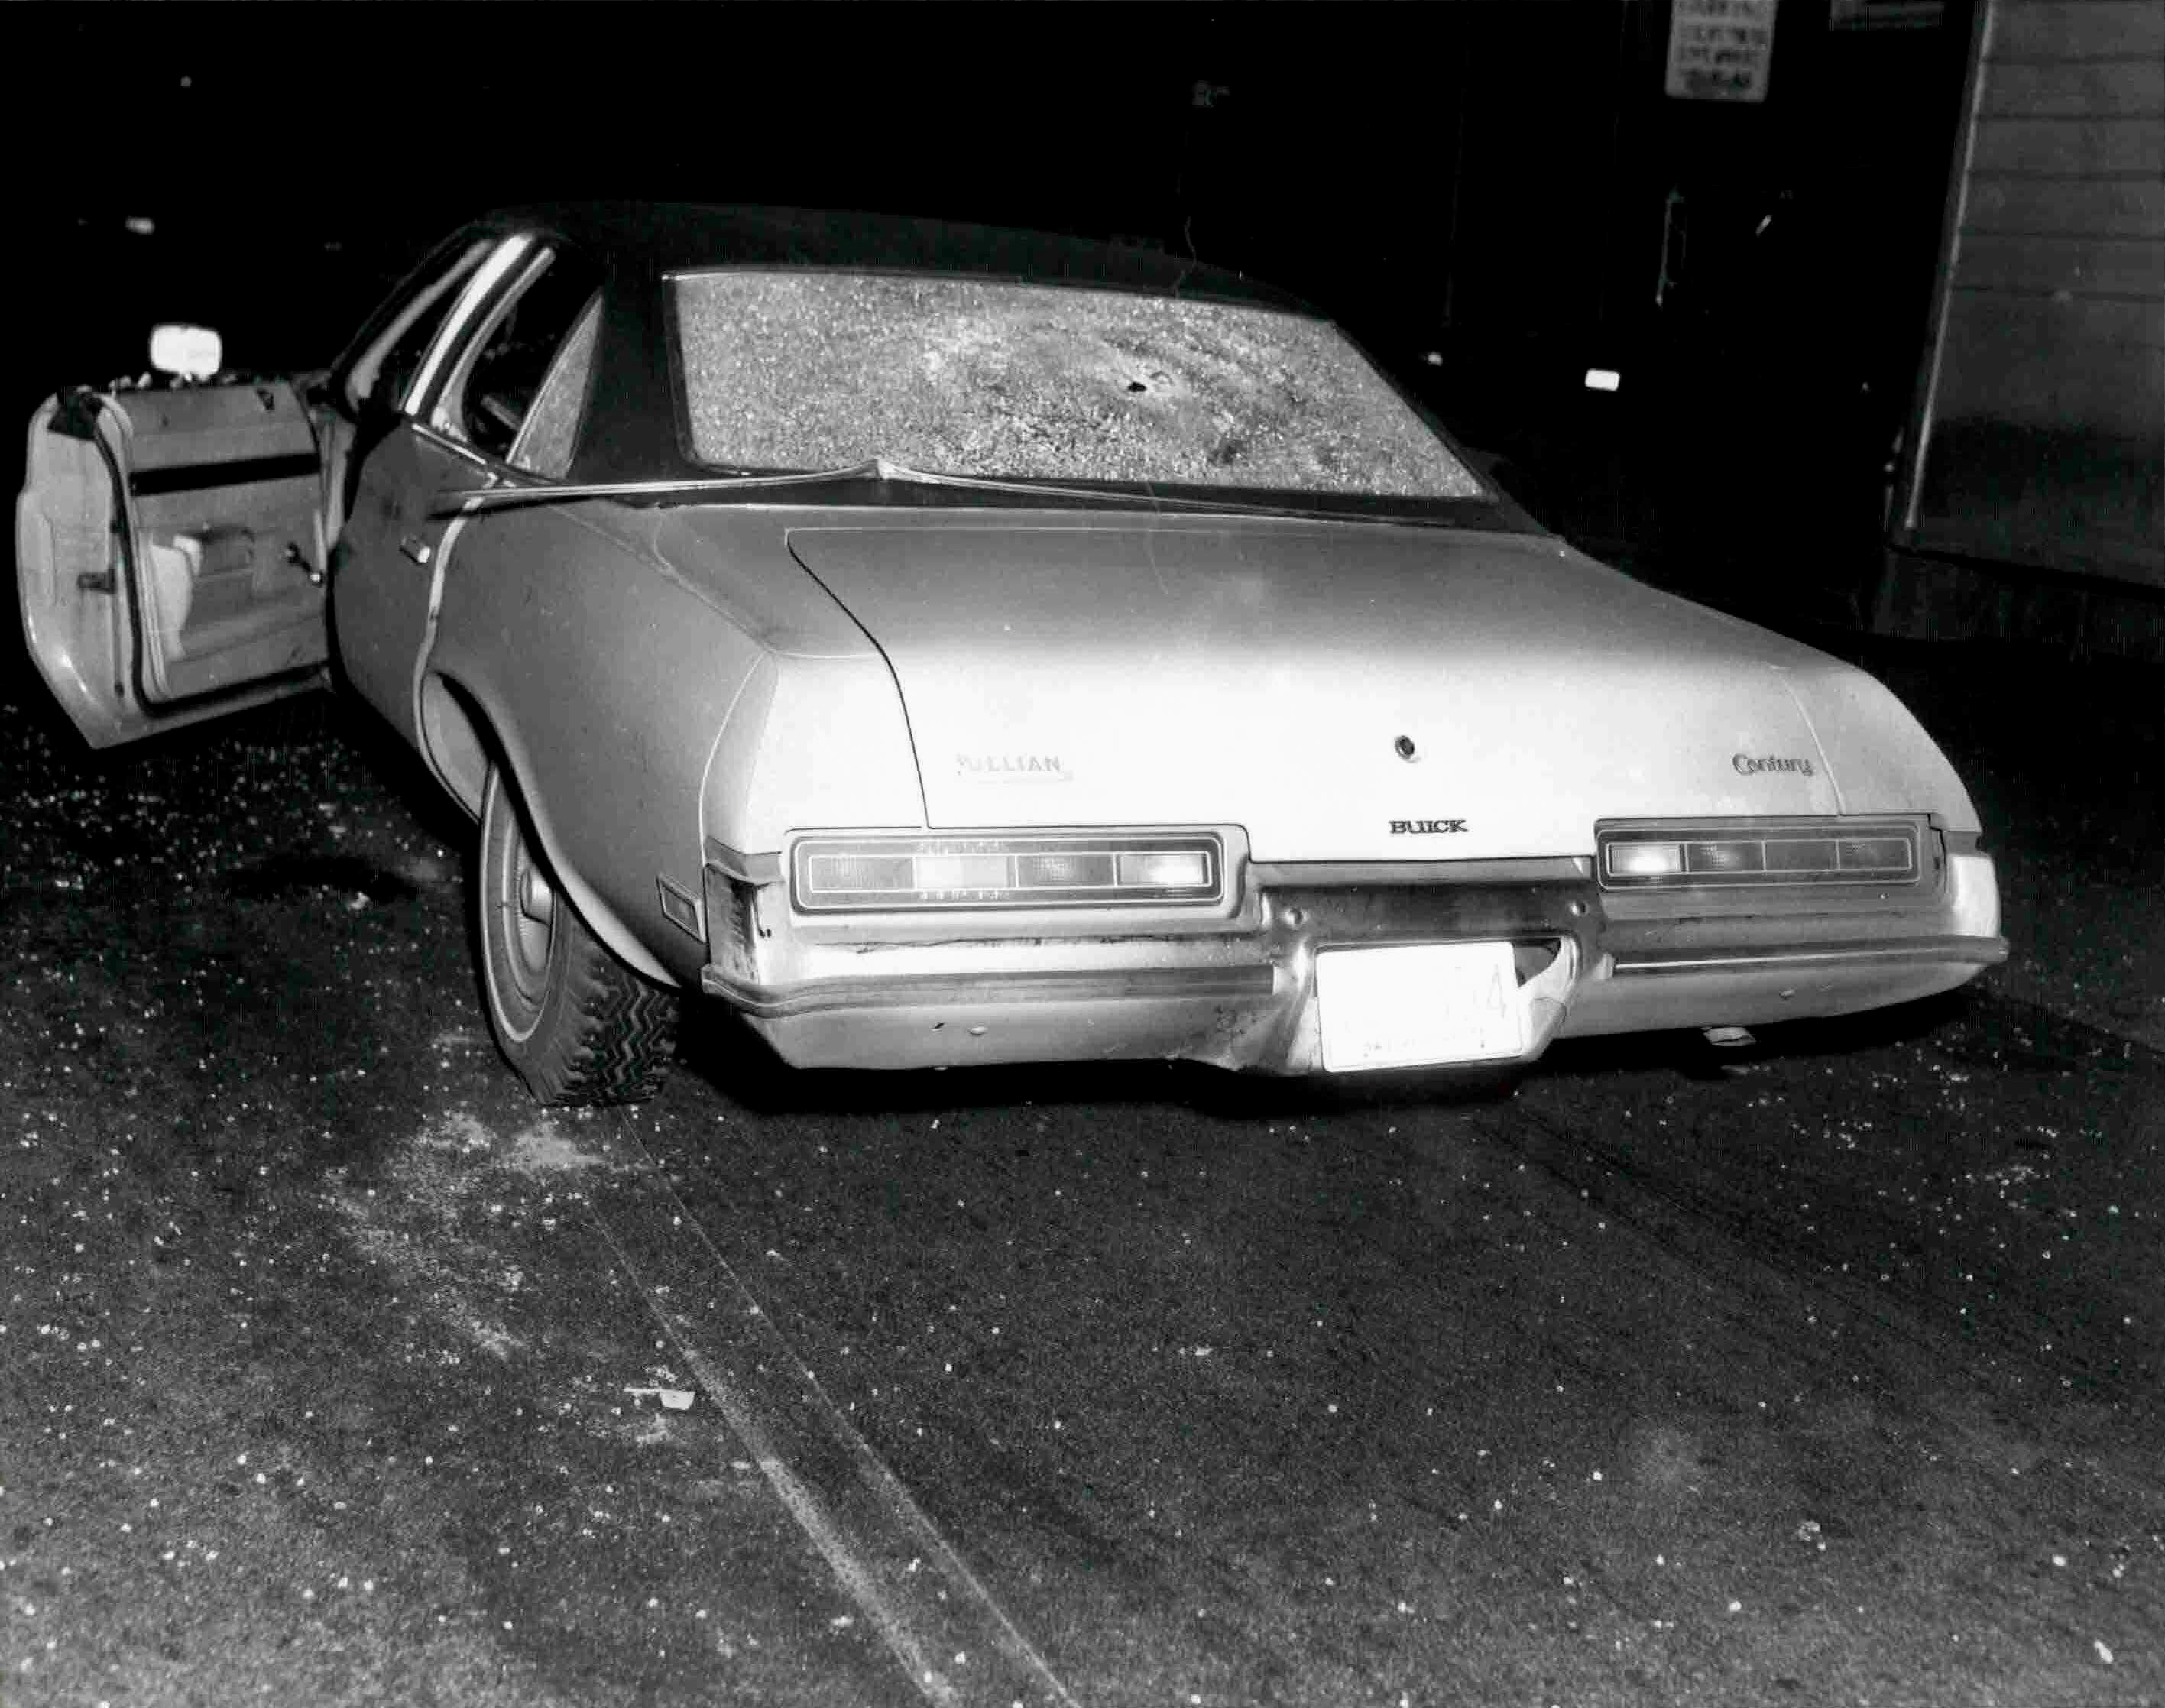 """FILE PHOTO: A vehicle with bullet holes and broken glass which was shown to jurors hearing the racketeering and murder trial of accused Boston mob boss James """"Whitey"""" Bulger is seen in this undated handout photo provided by the U.S. Attorney's Office June 17, 2013. U.S. Attorney's Office/Handout/File Photo via REUTERS."""